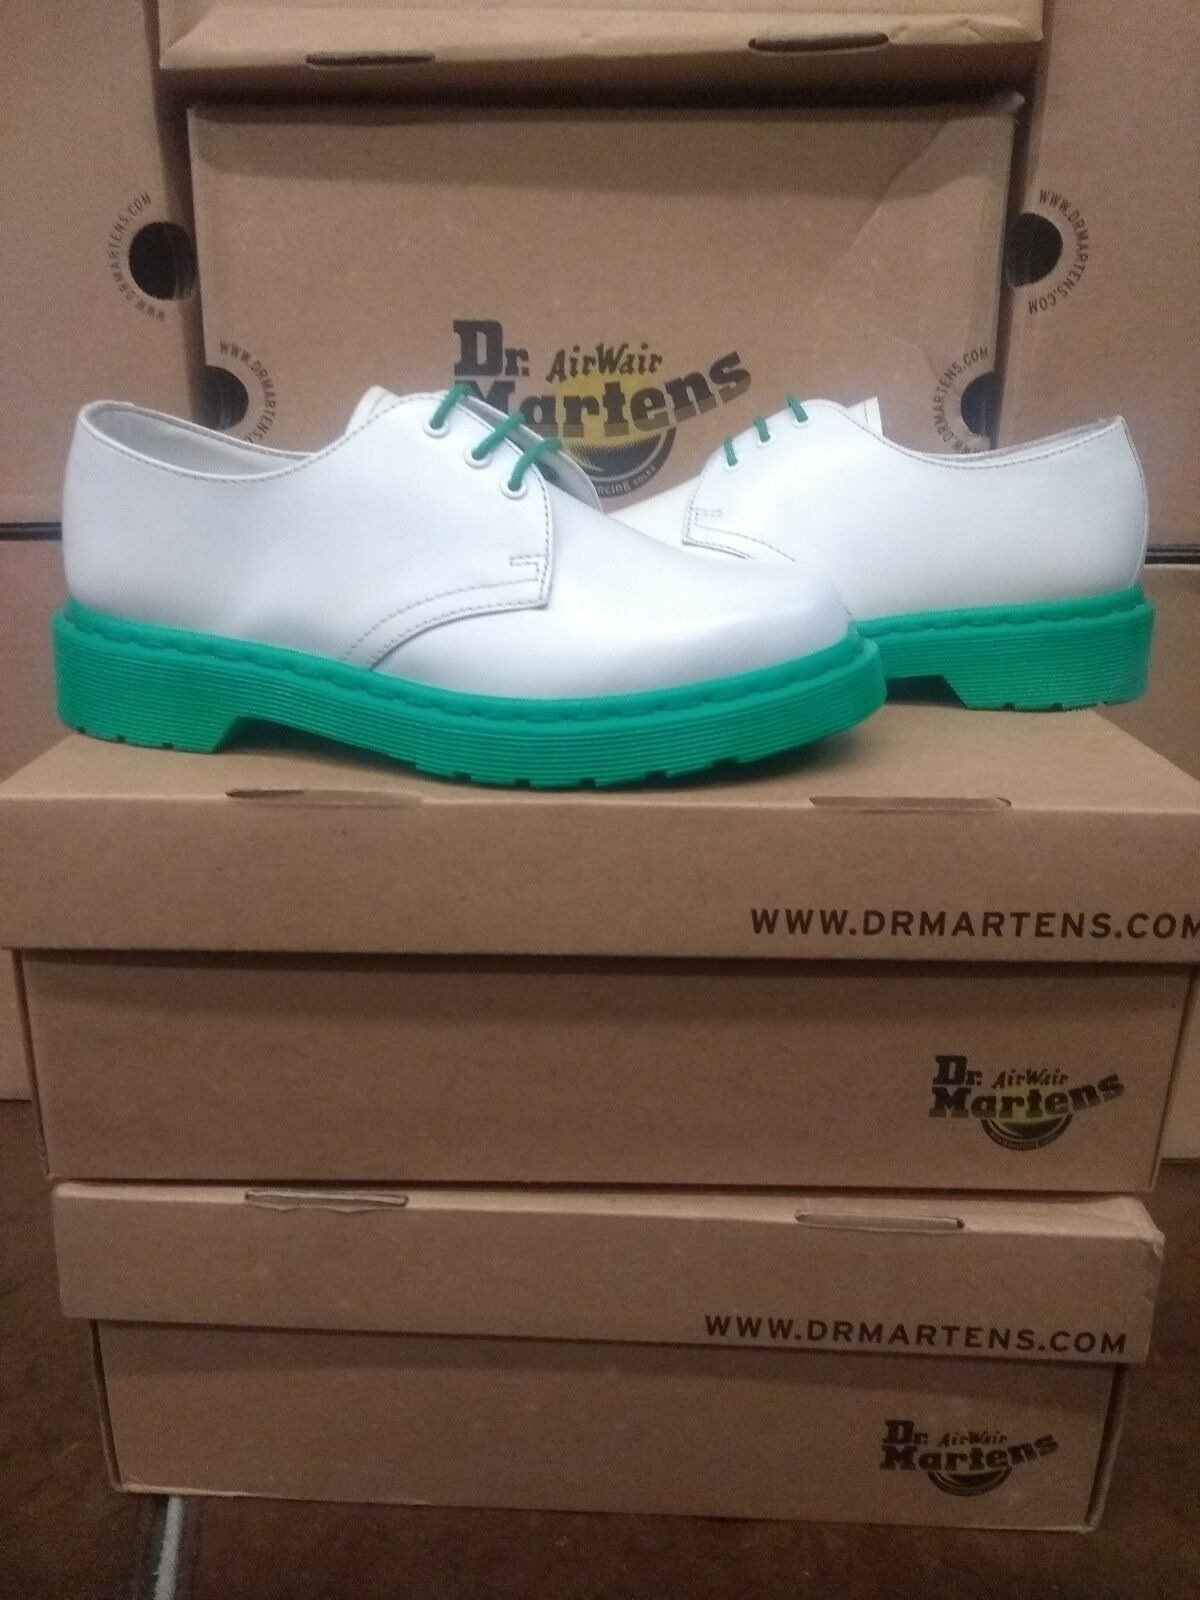 DR MARTENS 1461 WEISS LEATHER/GREEN SOLE SIZE 8